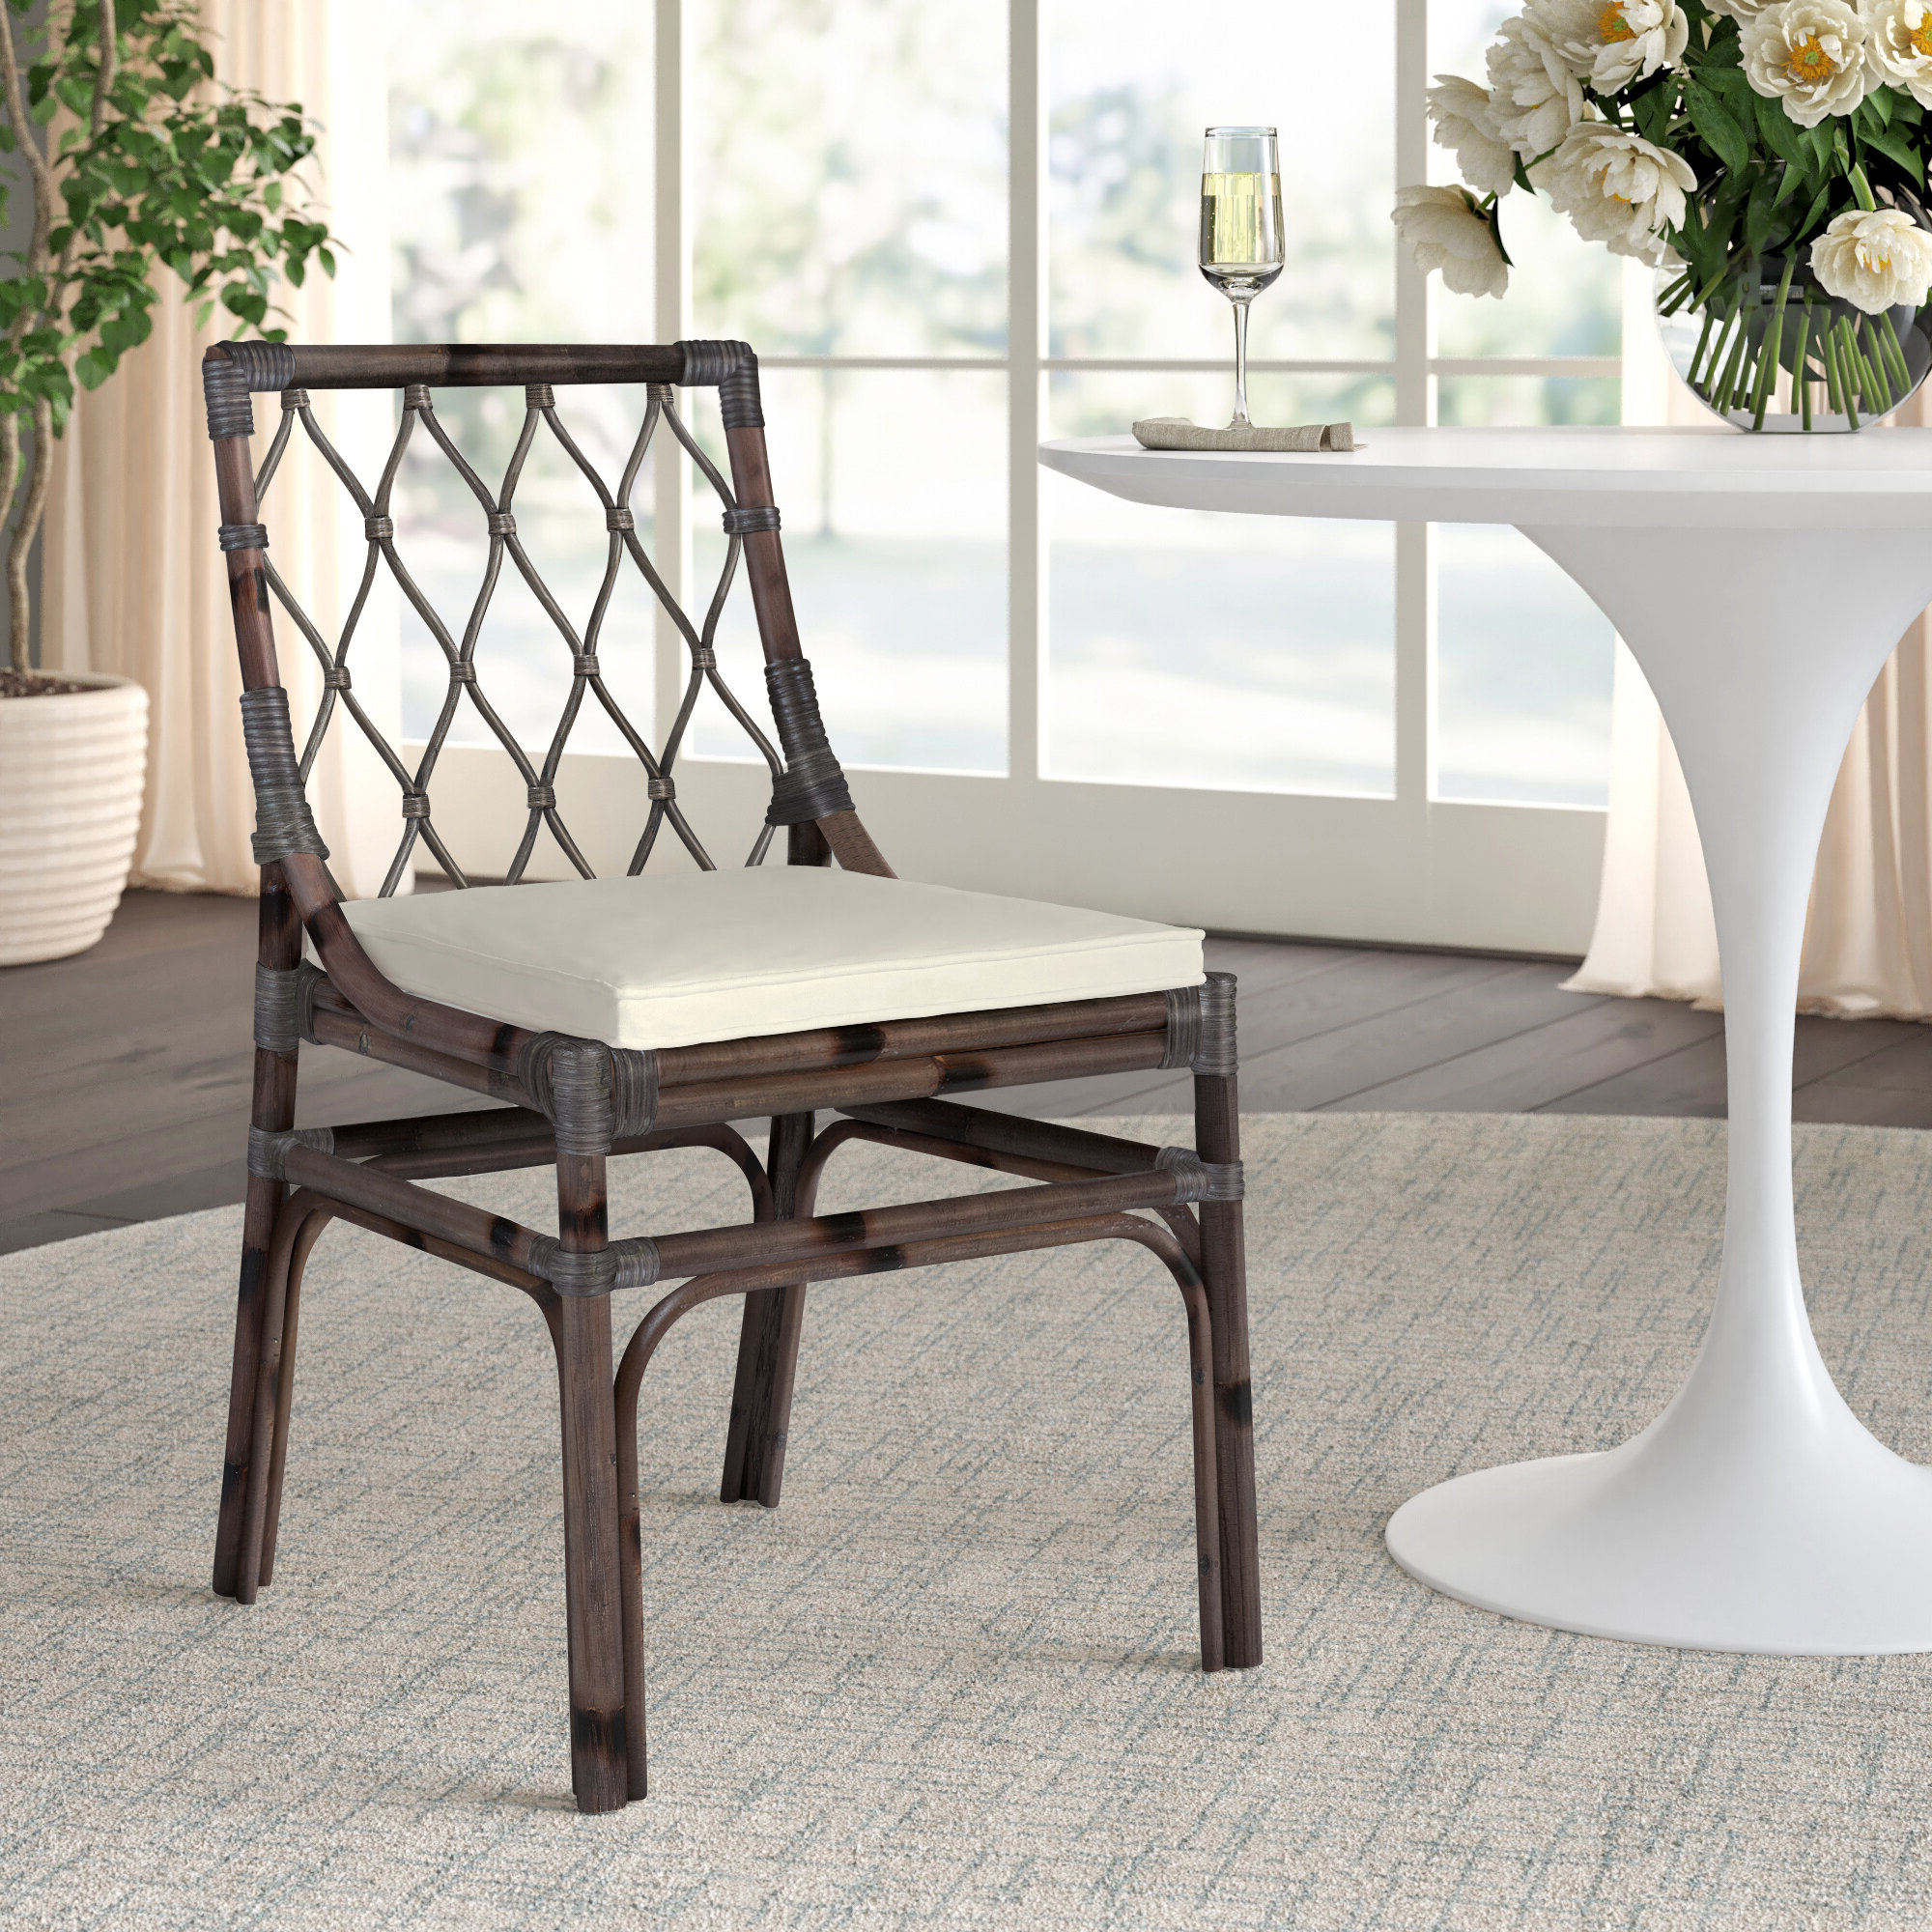 Bob Stripe Upholstered Dining Chairs (set Of 2) With Well Known Upholstered Cross Back Side Chair (View 12 of 20)